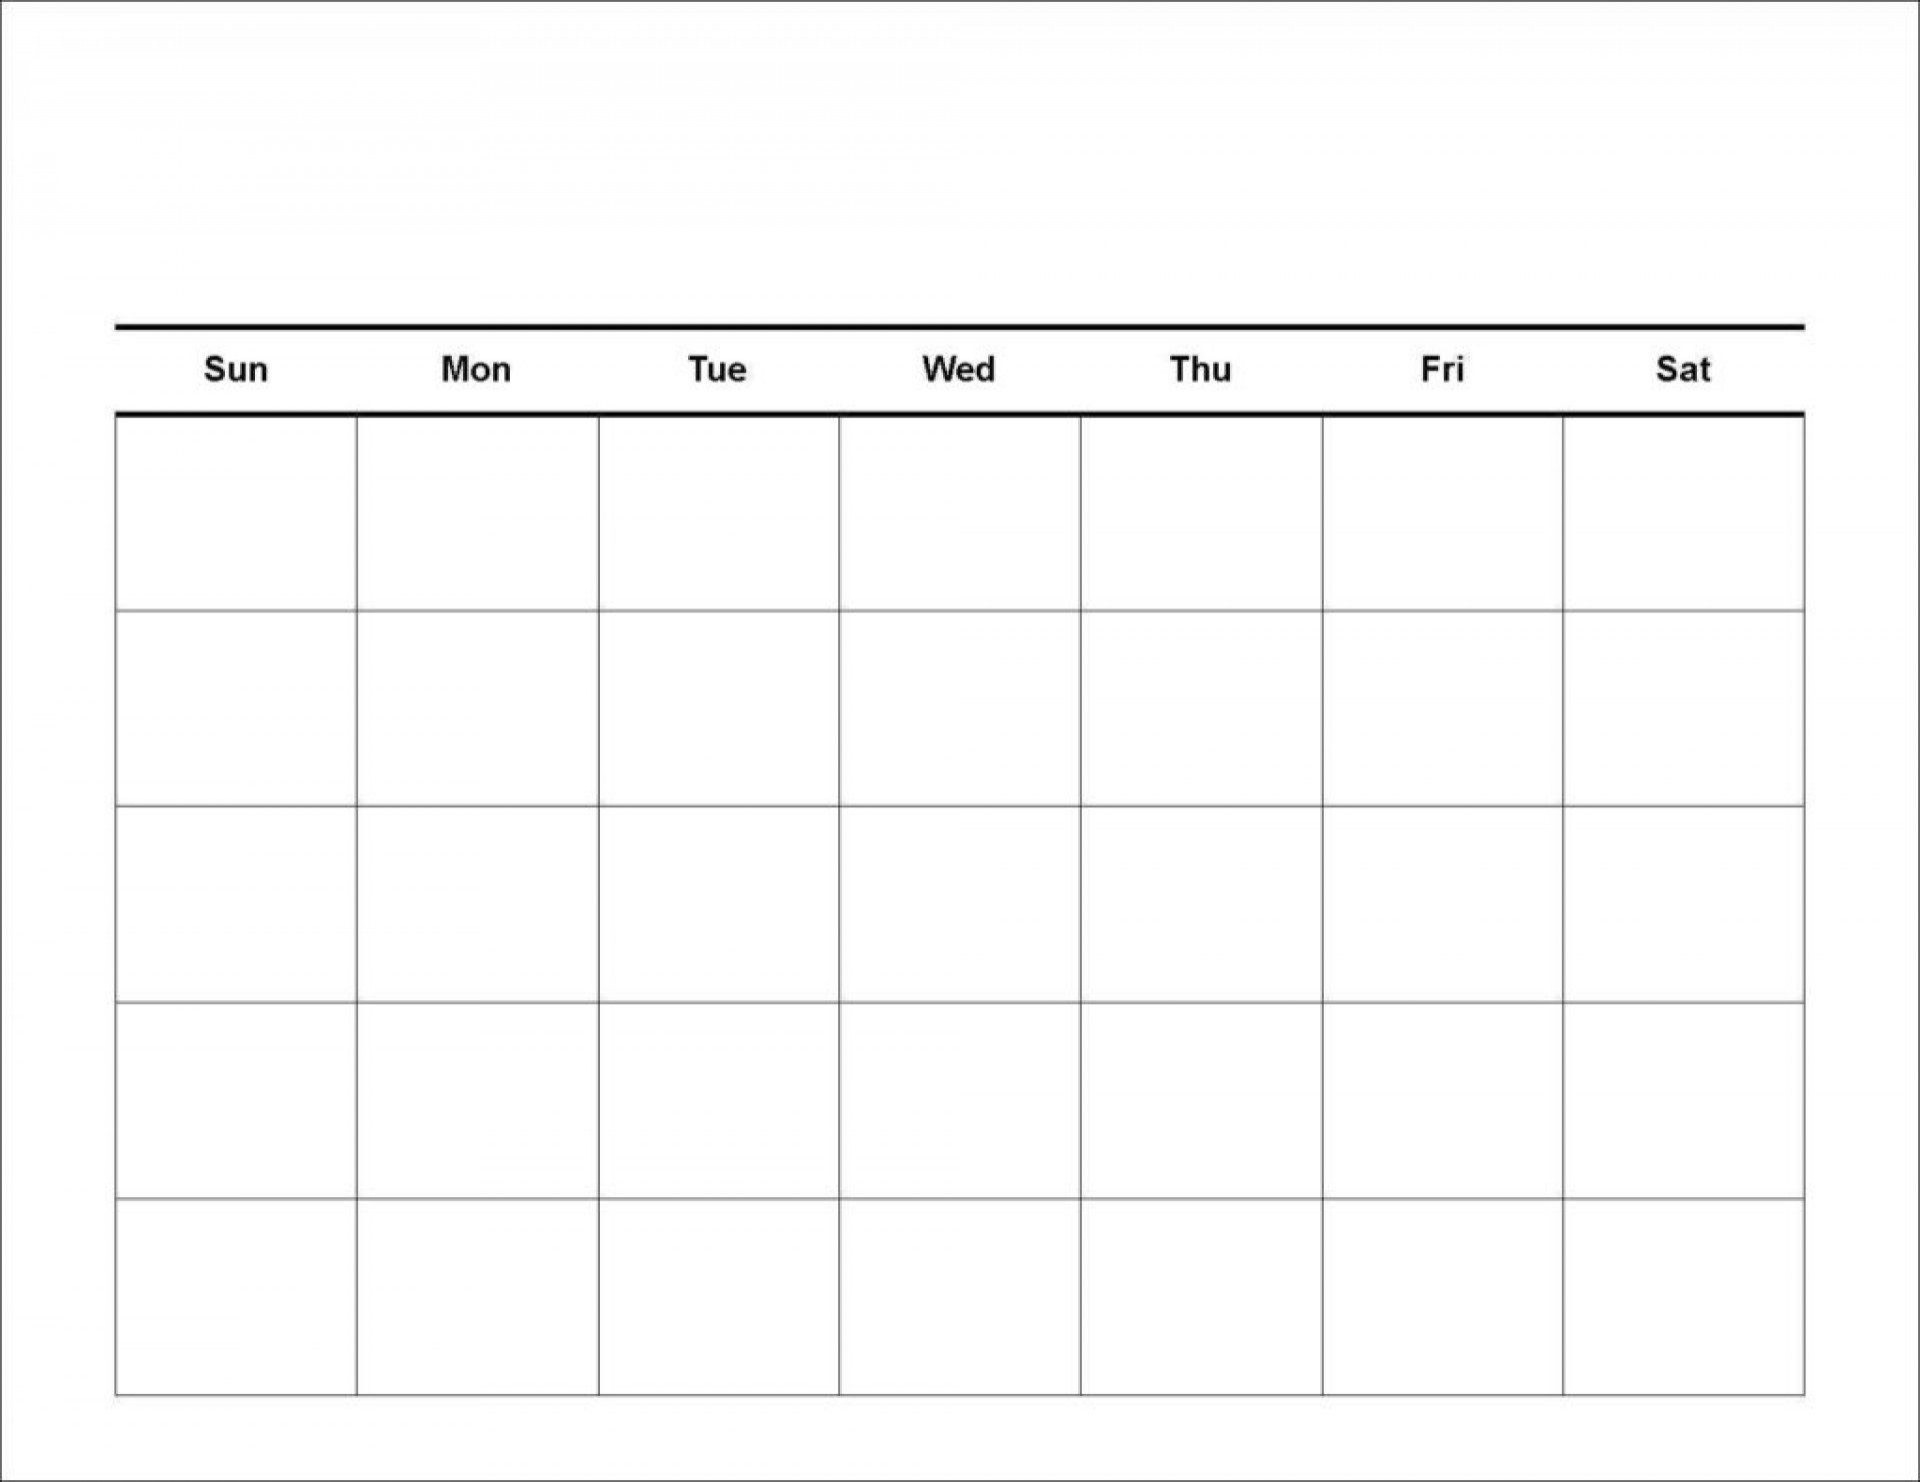 002 Beautiful Employee Schedule Template Free Image  Downloadable Weekly Work Training Excel Shift1920